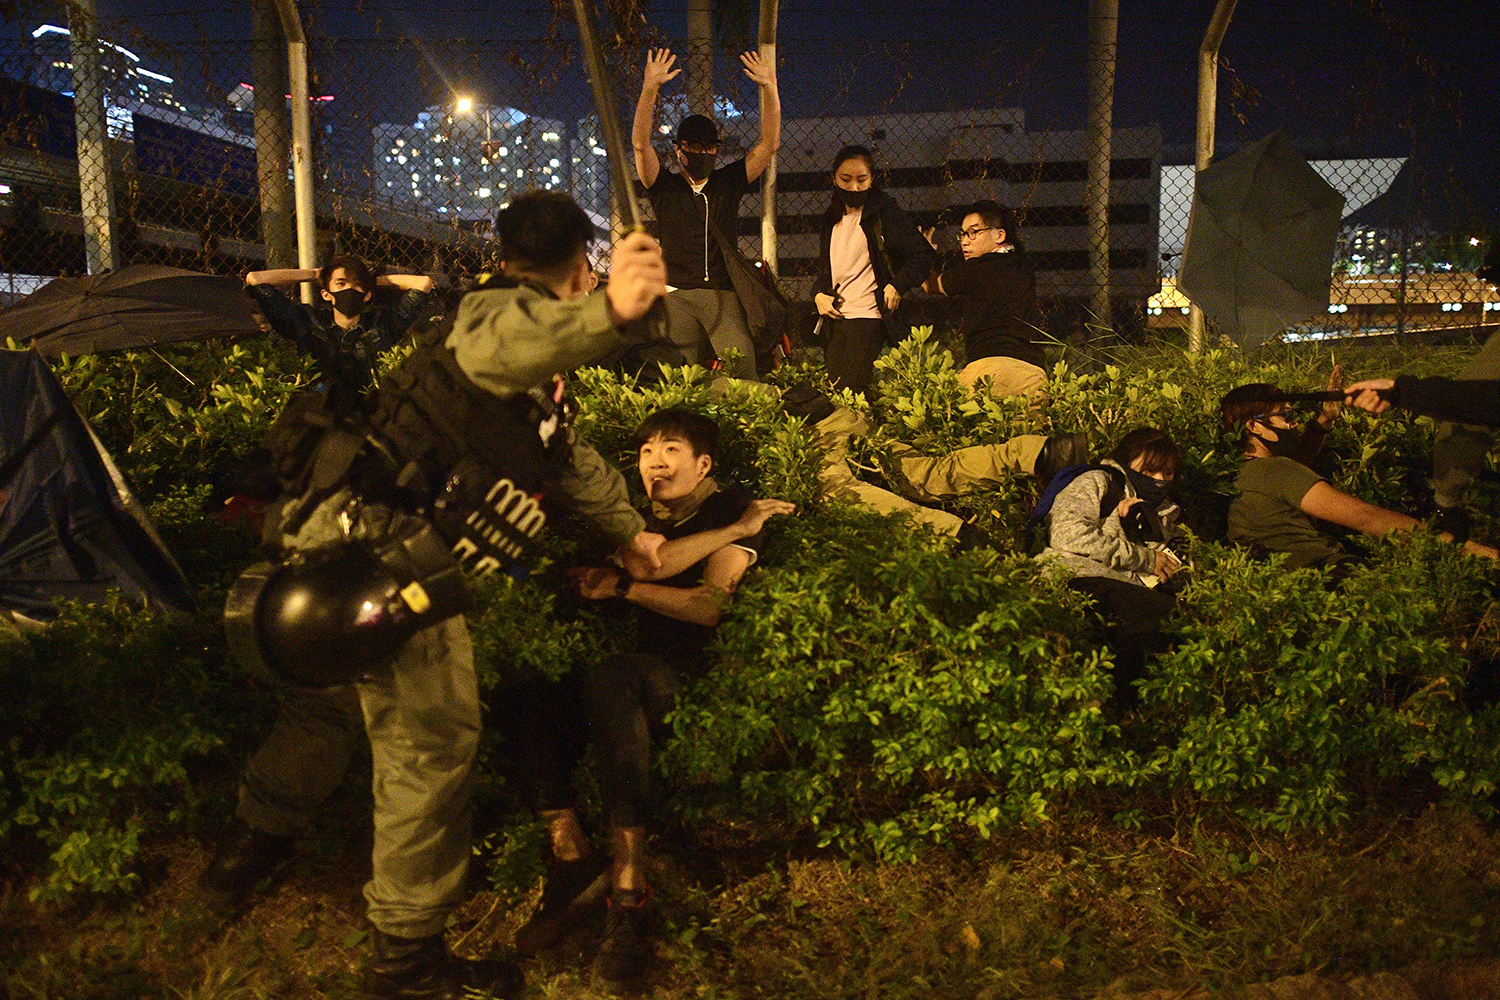 Police detain protesters and students after they tried to flee outside the Hong Kong Polytechnic University campus on Nov. 19. NICOLAS ASFOURI/AFP via Getty Images